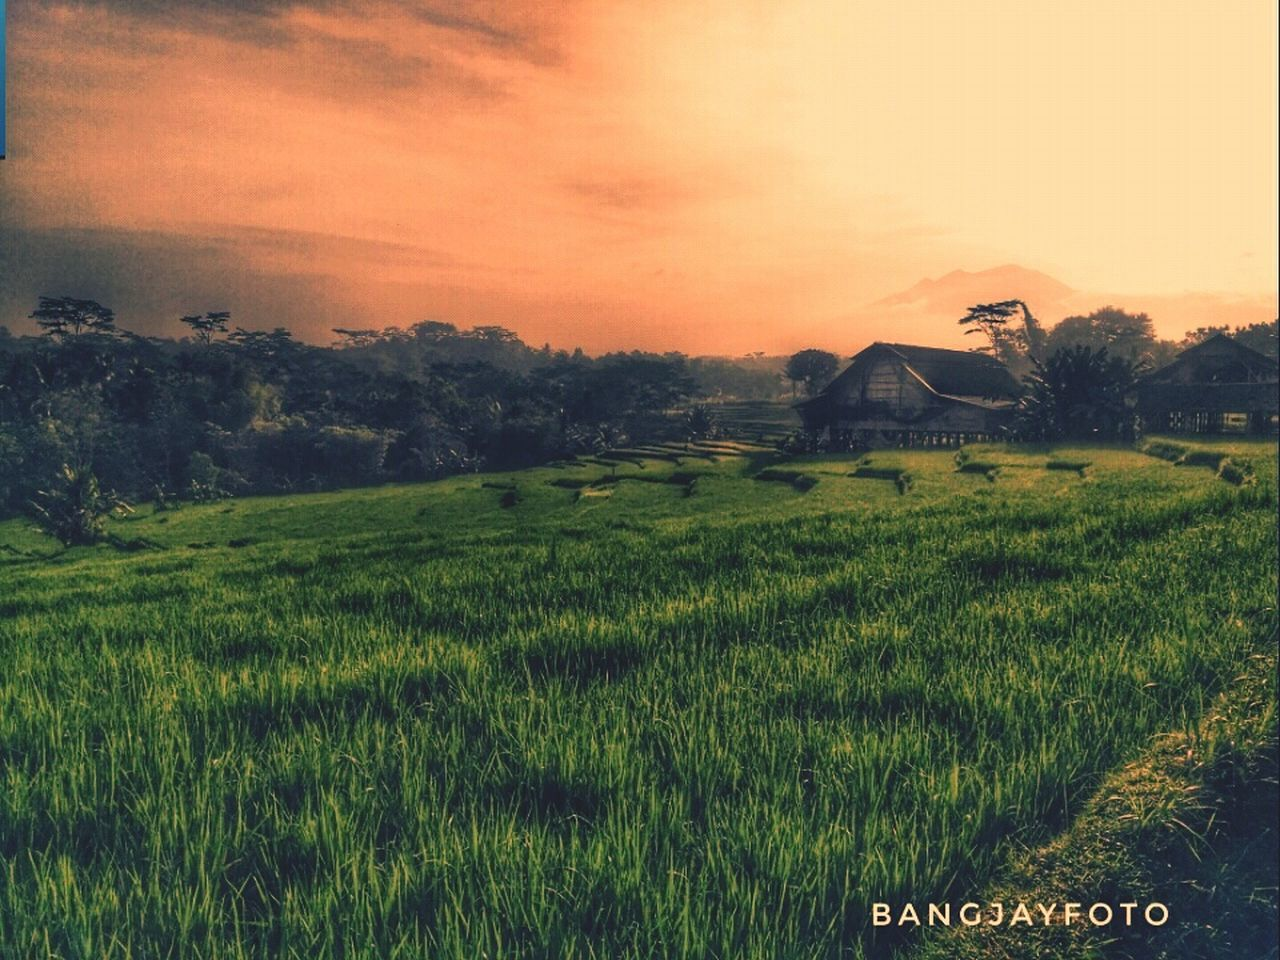 field, agriculture, sunset, landscape, tranquility, scenics, rice paddy, nature, no people, growth, crop, grass, beauty in nature, green color, outdoors, sky, tranquil scene, tree, rice - cereal plant, architecture, rural scene, cereal plant, day, irrigation equipment